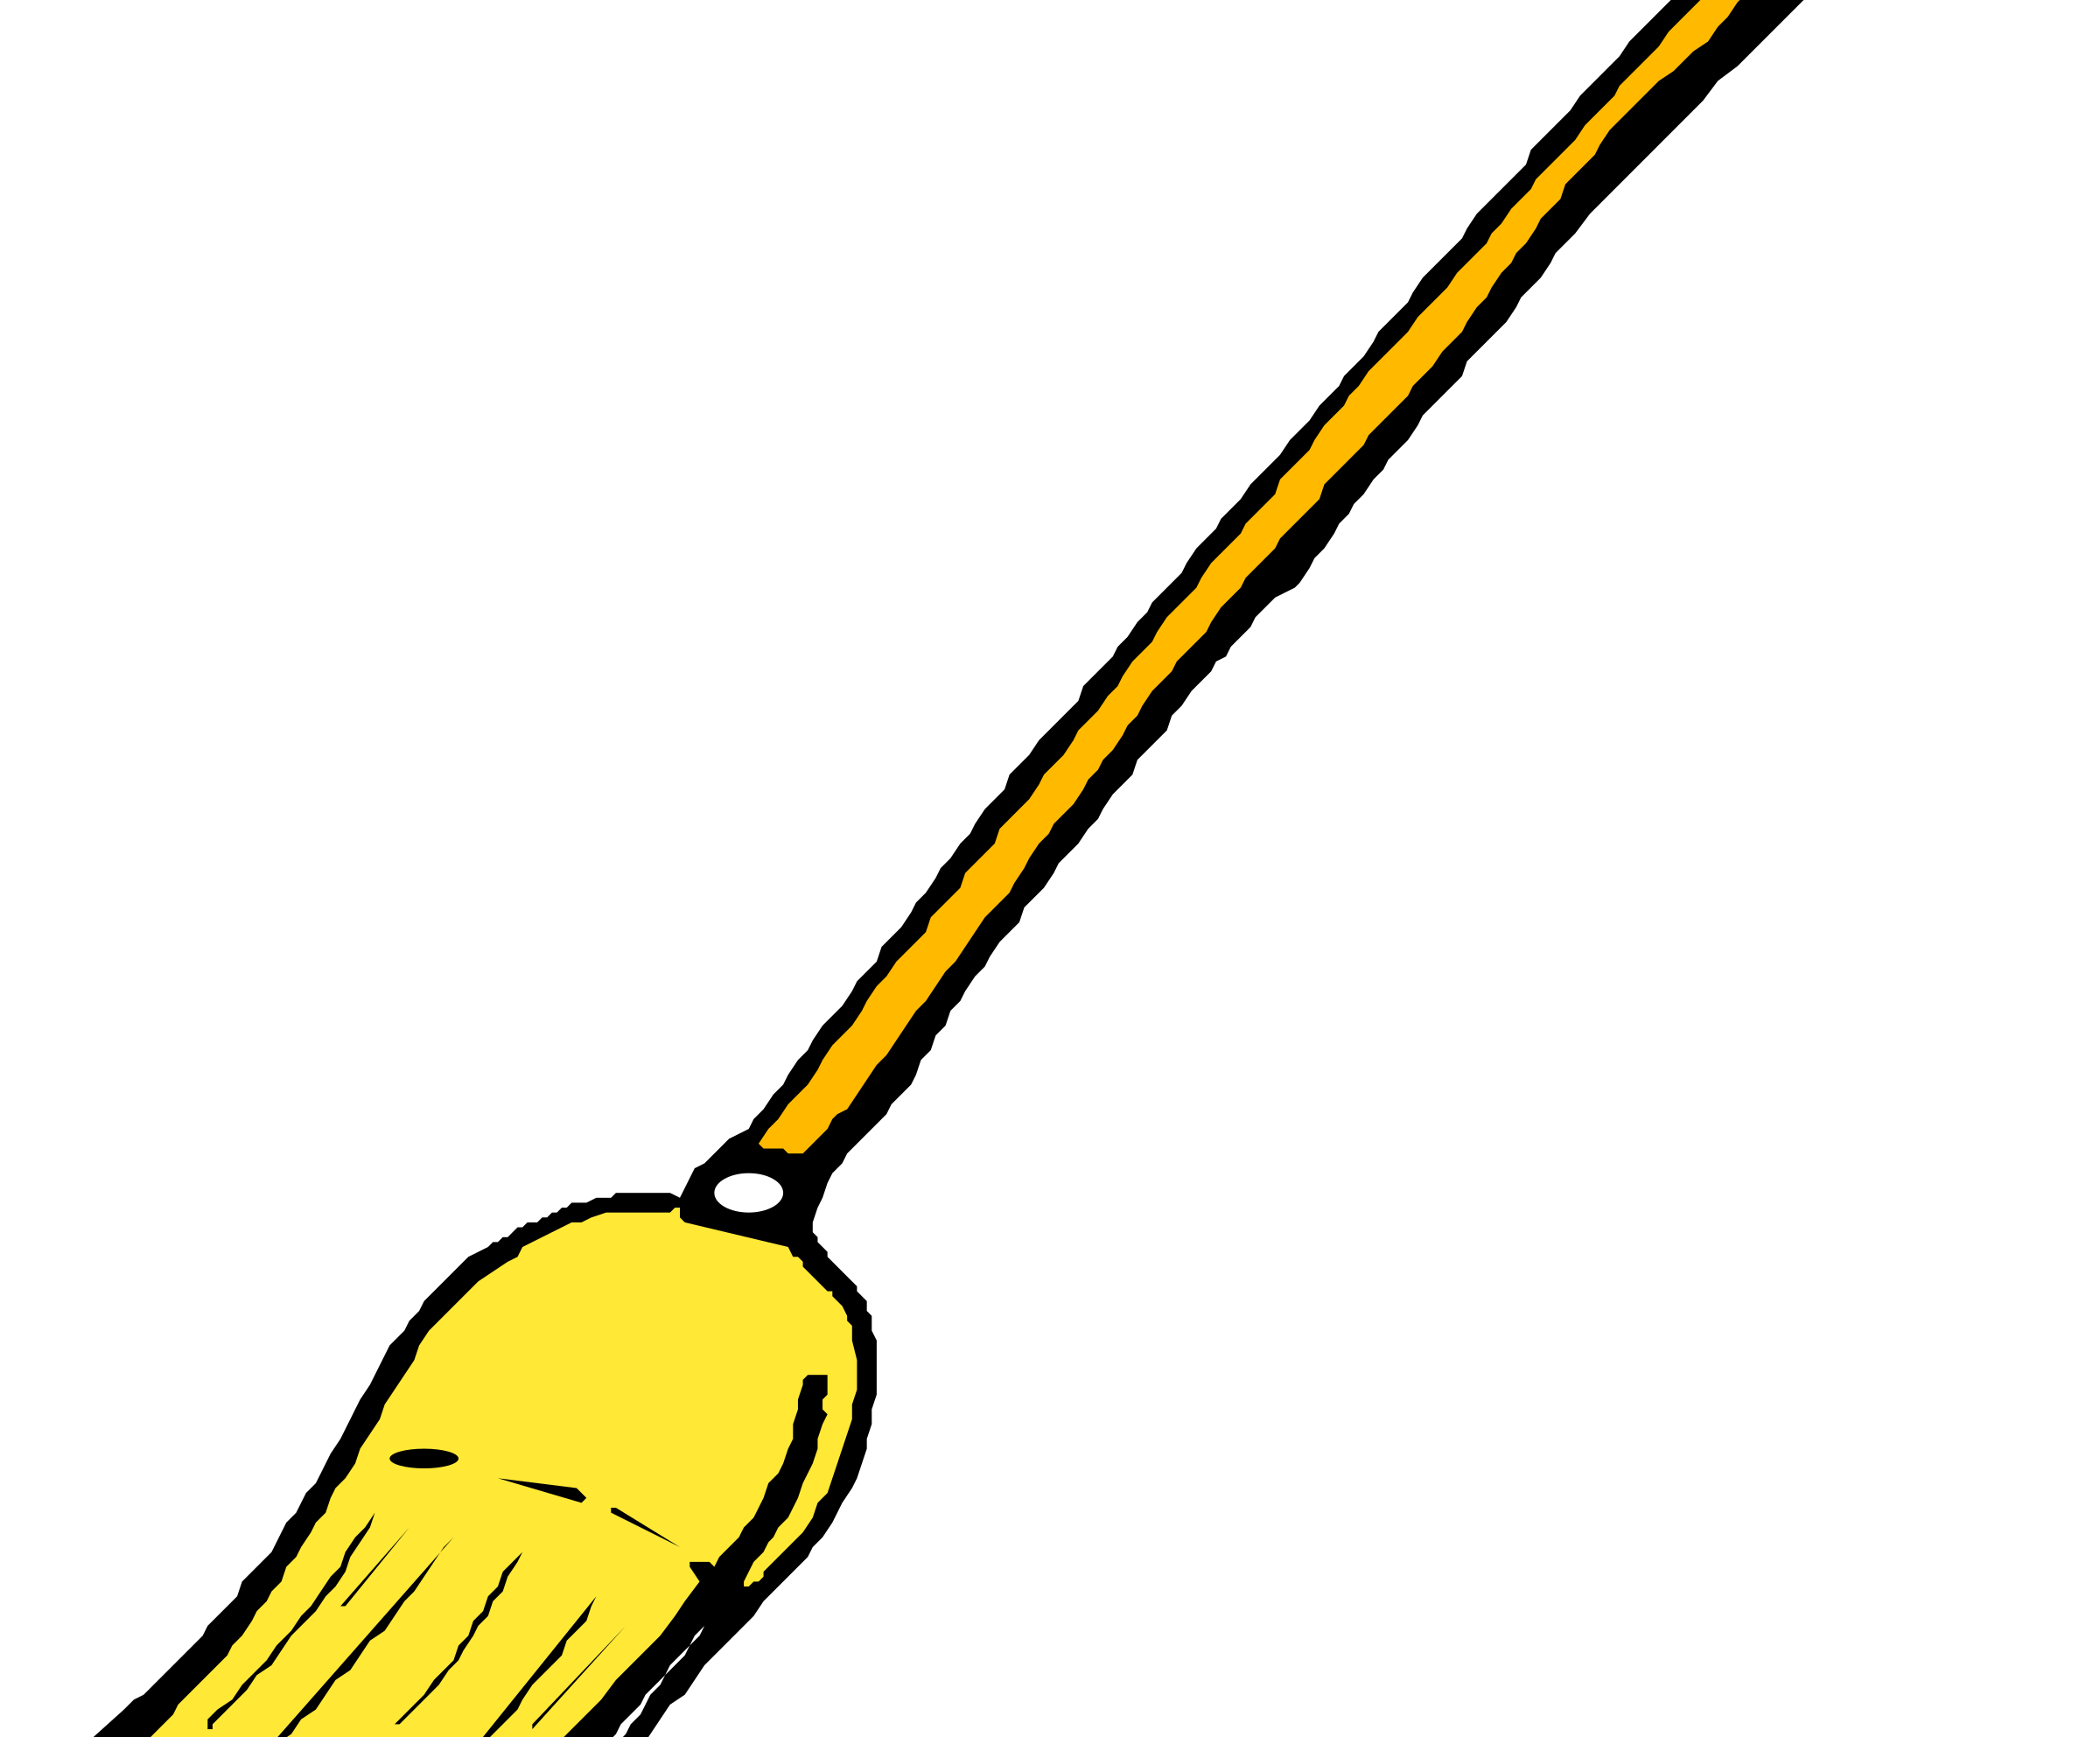 Broom by liftarn